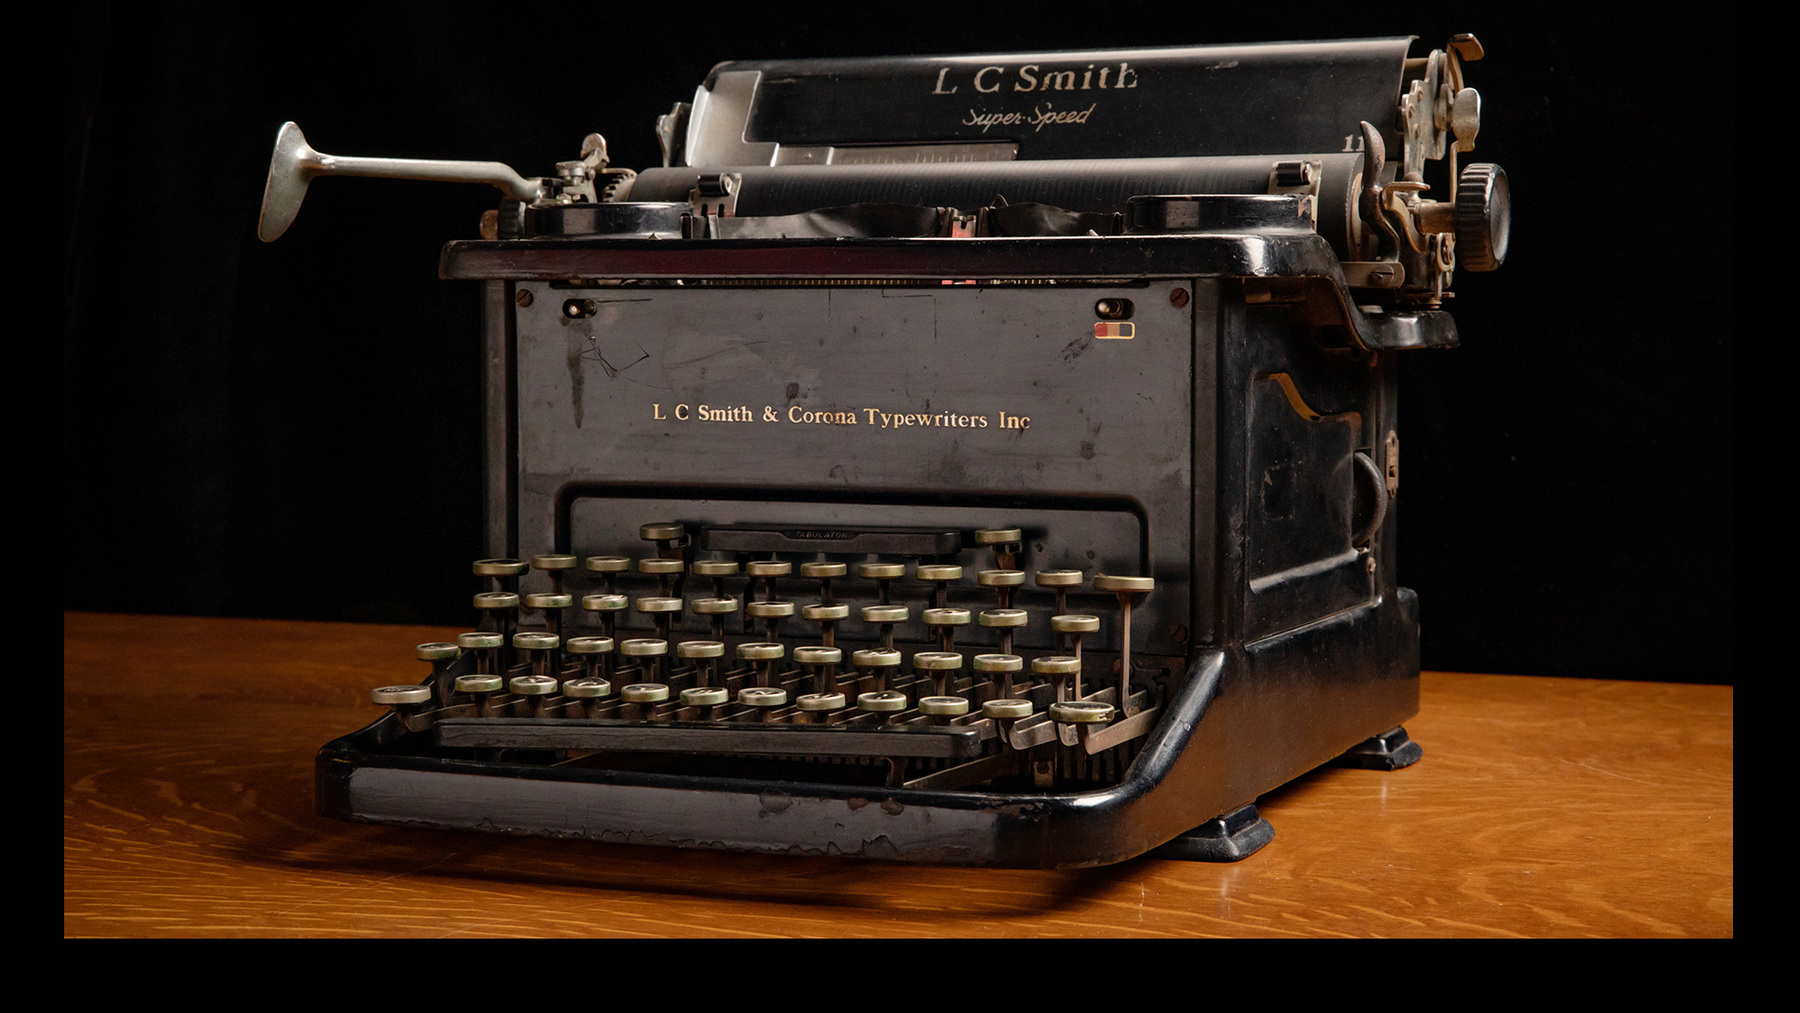 The exhibit also will showcase a typewriter used by Roger Ebert, the editor of the Daily Illini while he was a University of Illinois student.